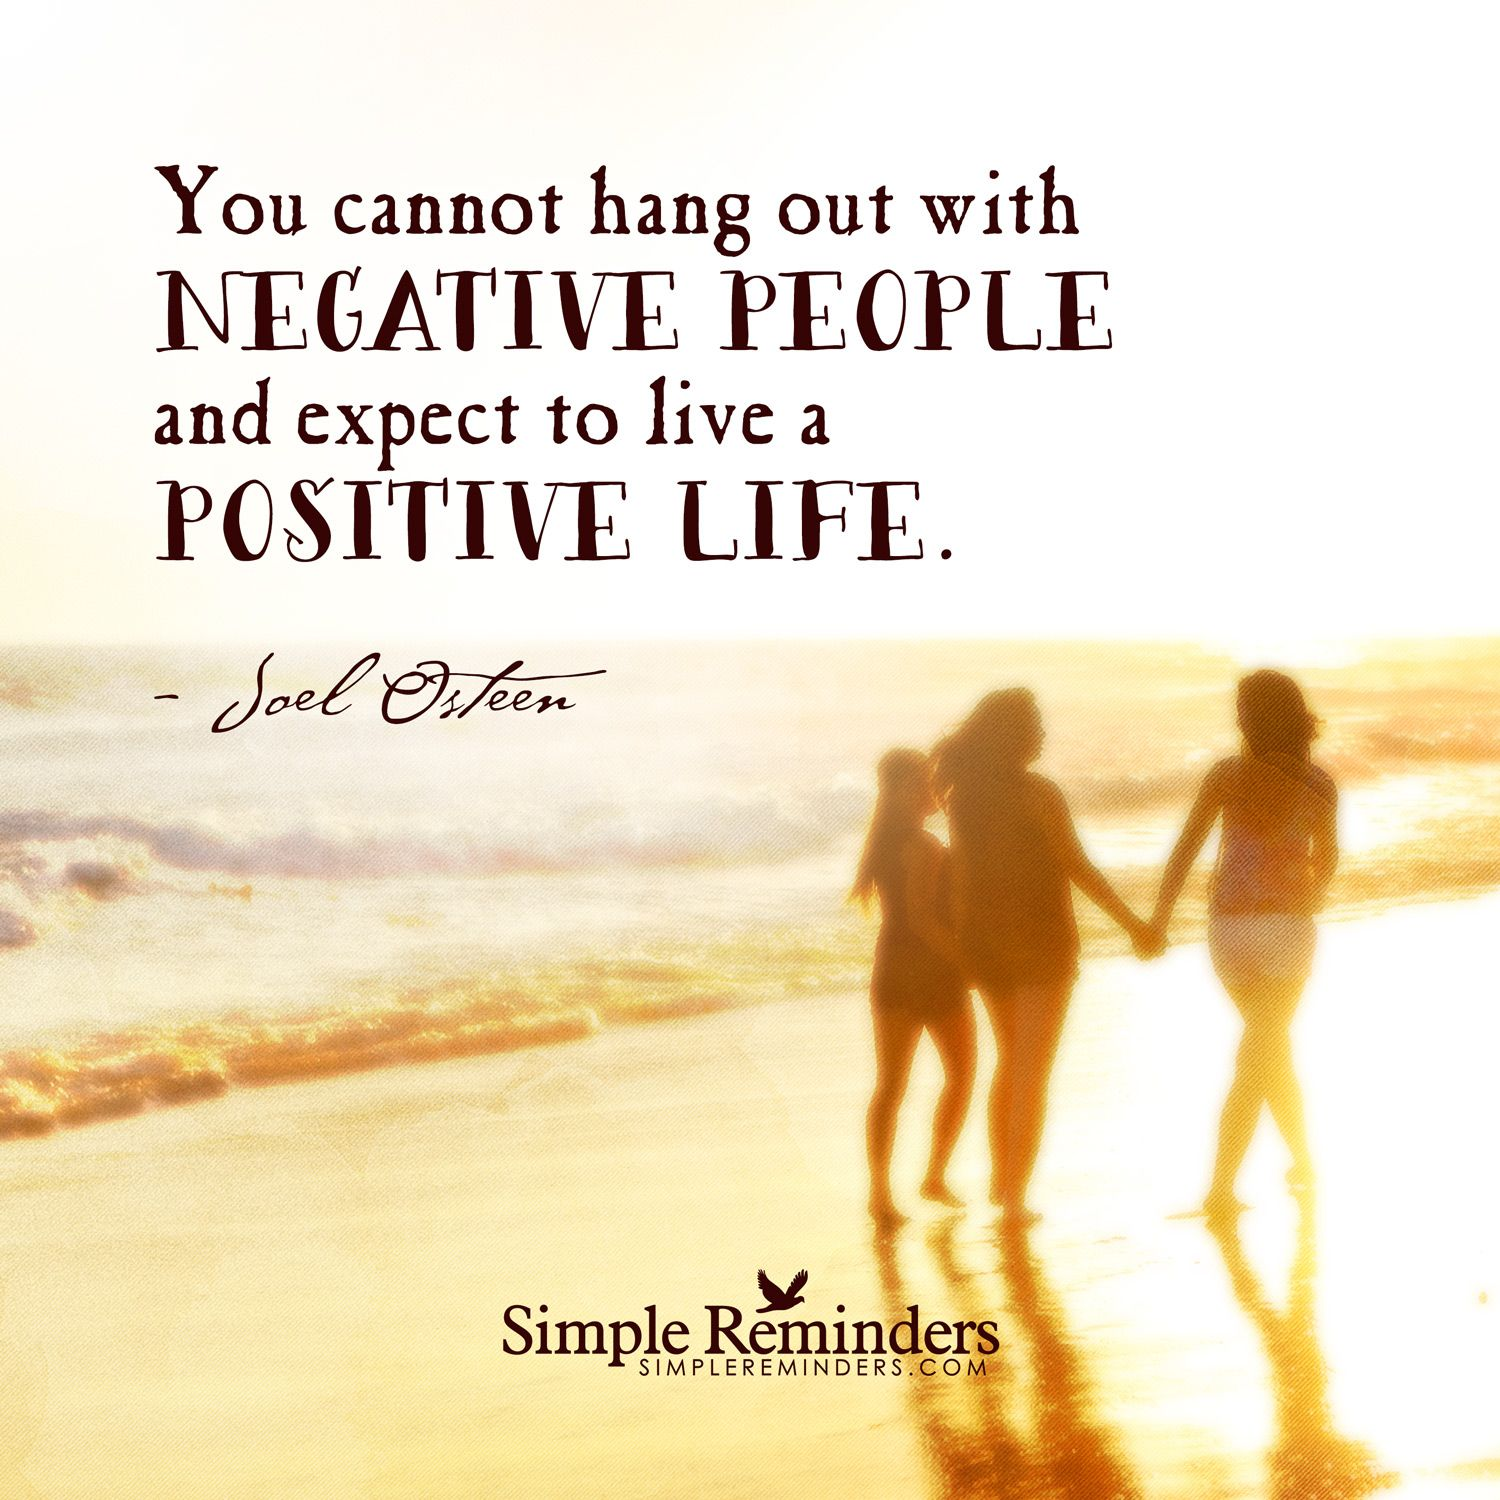 Joel Osteen Quotes On Love You Cannot Hang Out With Negative People And Expect To Live A